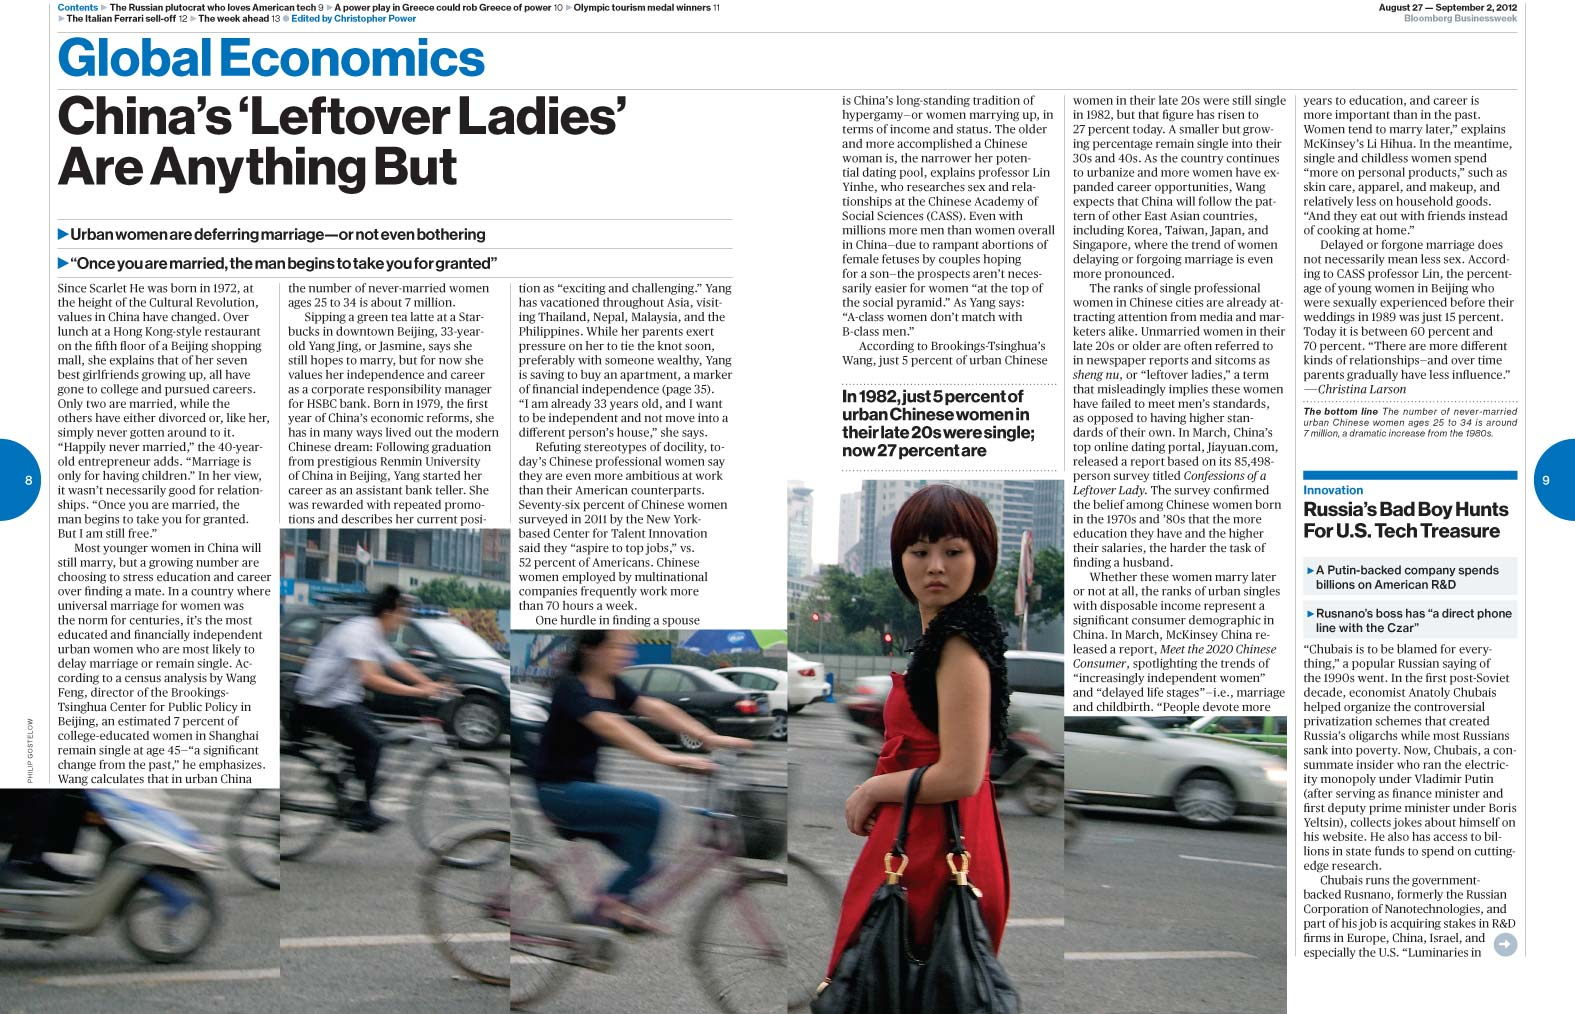 Chengdu girl, for Bloomberg Businessweek